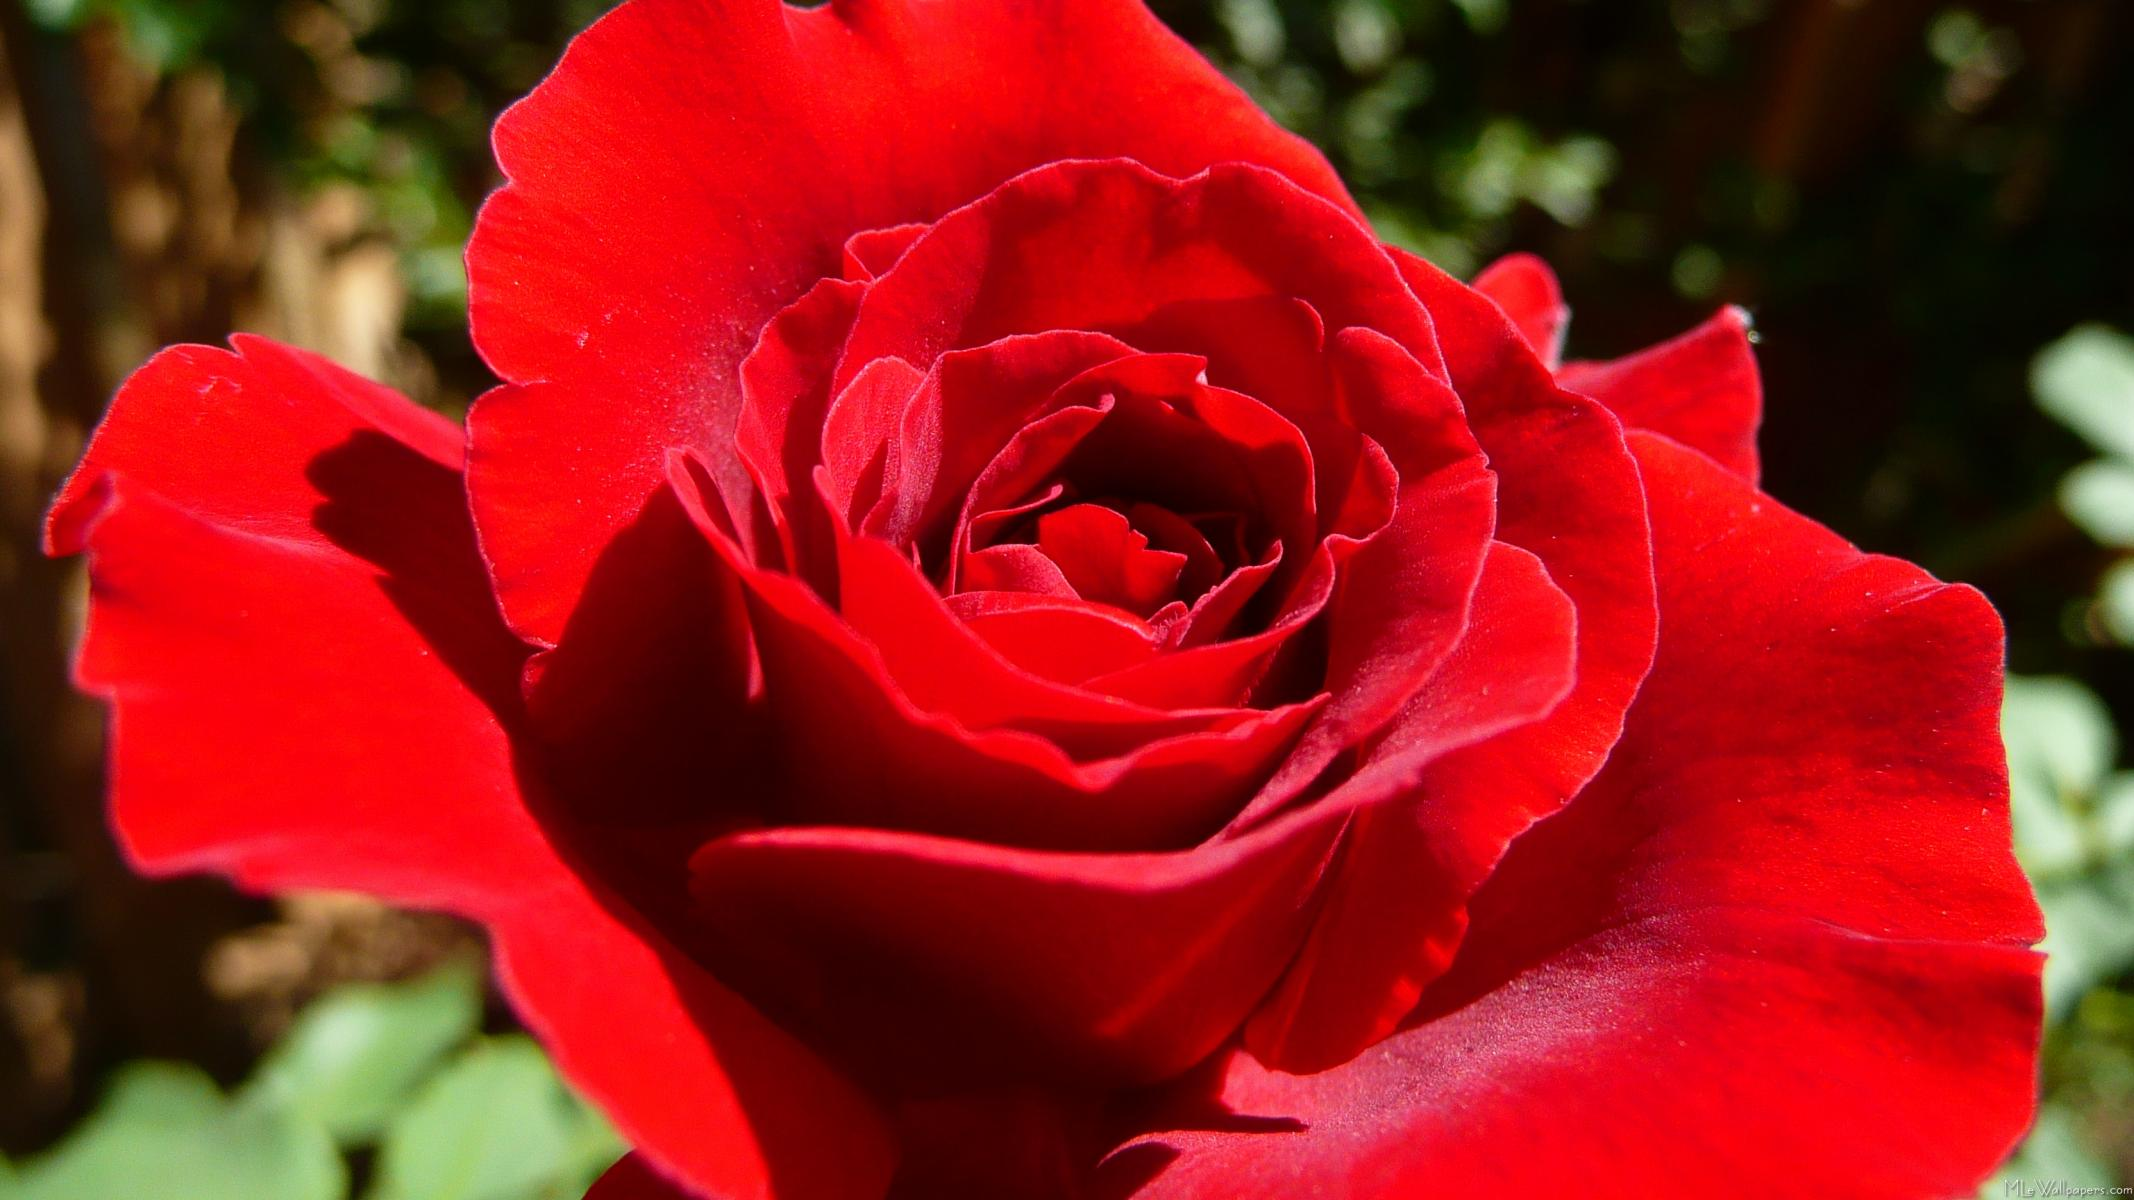 Mlewallpapers bright red rose bright red rose izmirmasajfo Choice Image